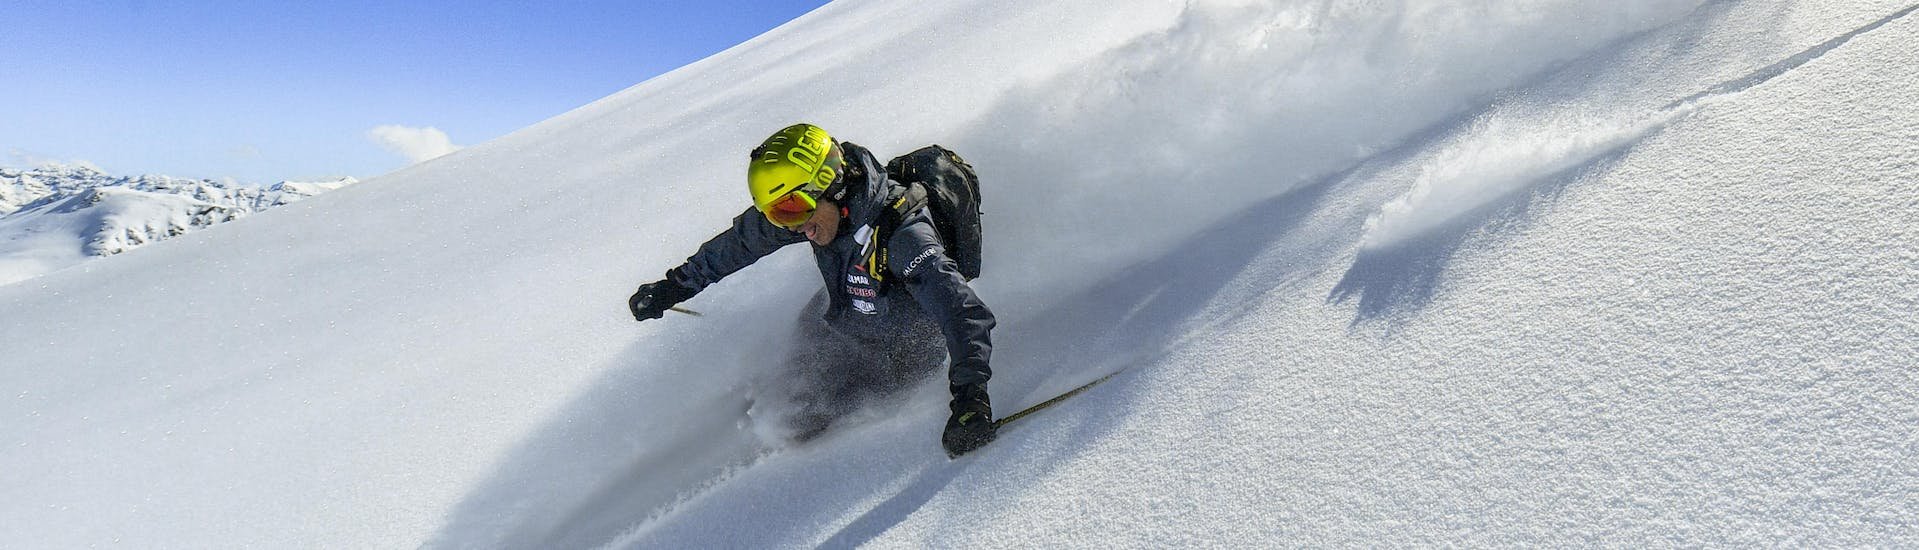 private-off-skiing-lessons-for-advanced-skiers-giorgio-rocca-ski-academy-stmoritz-hero